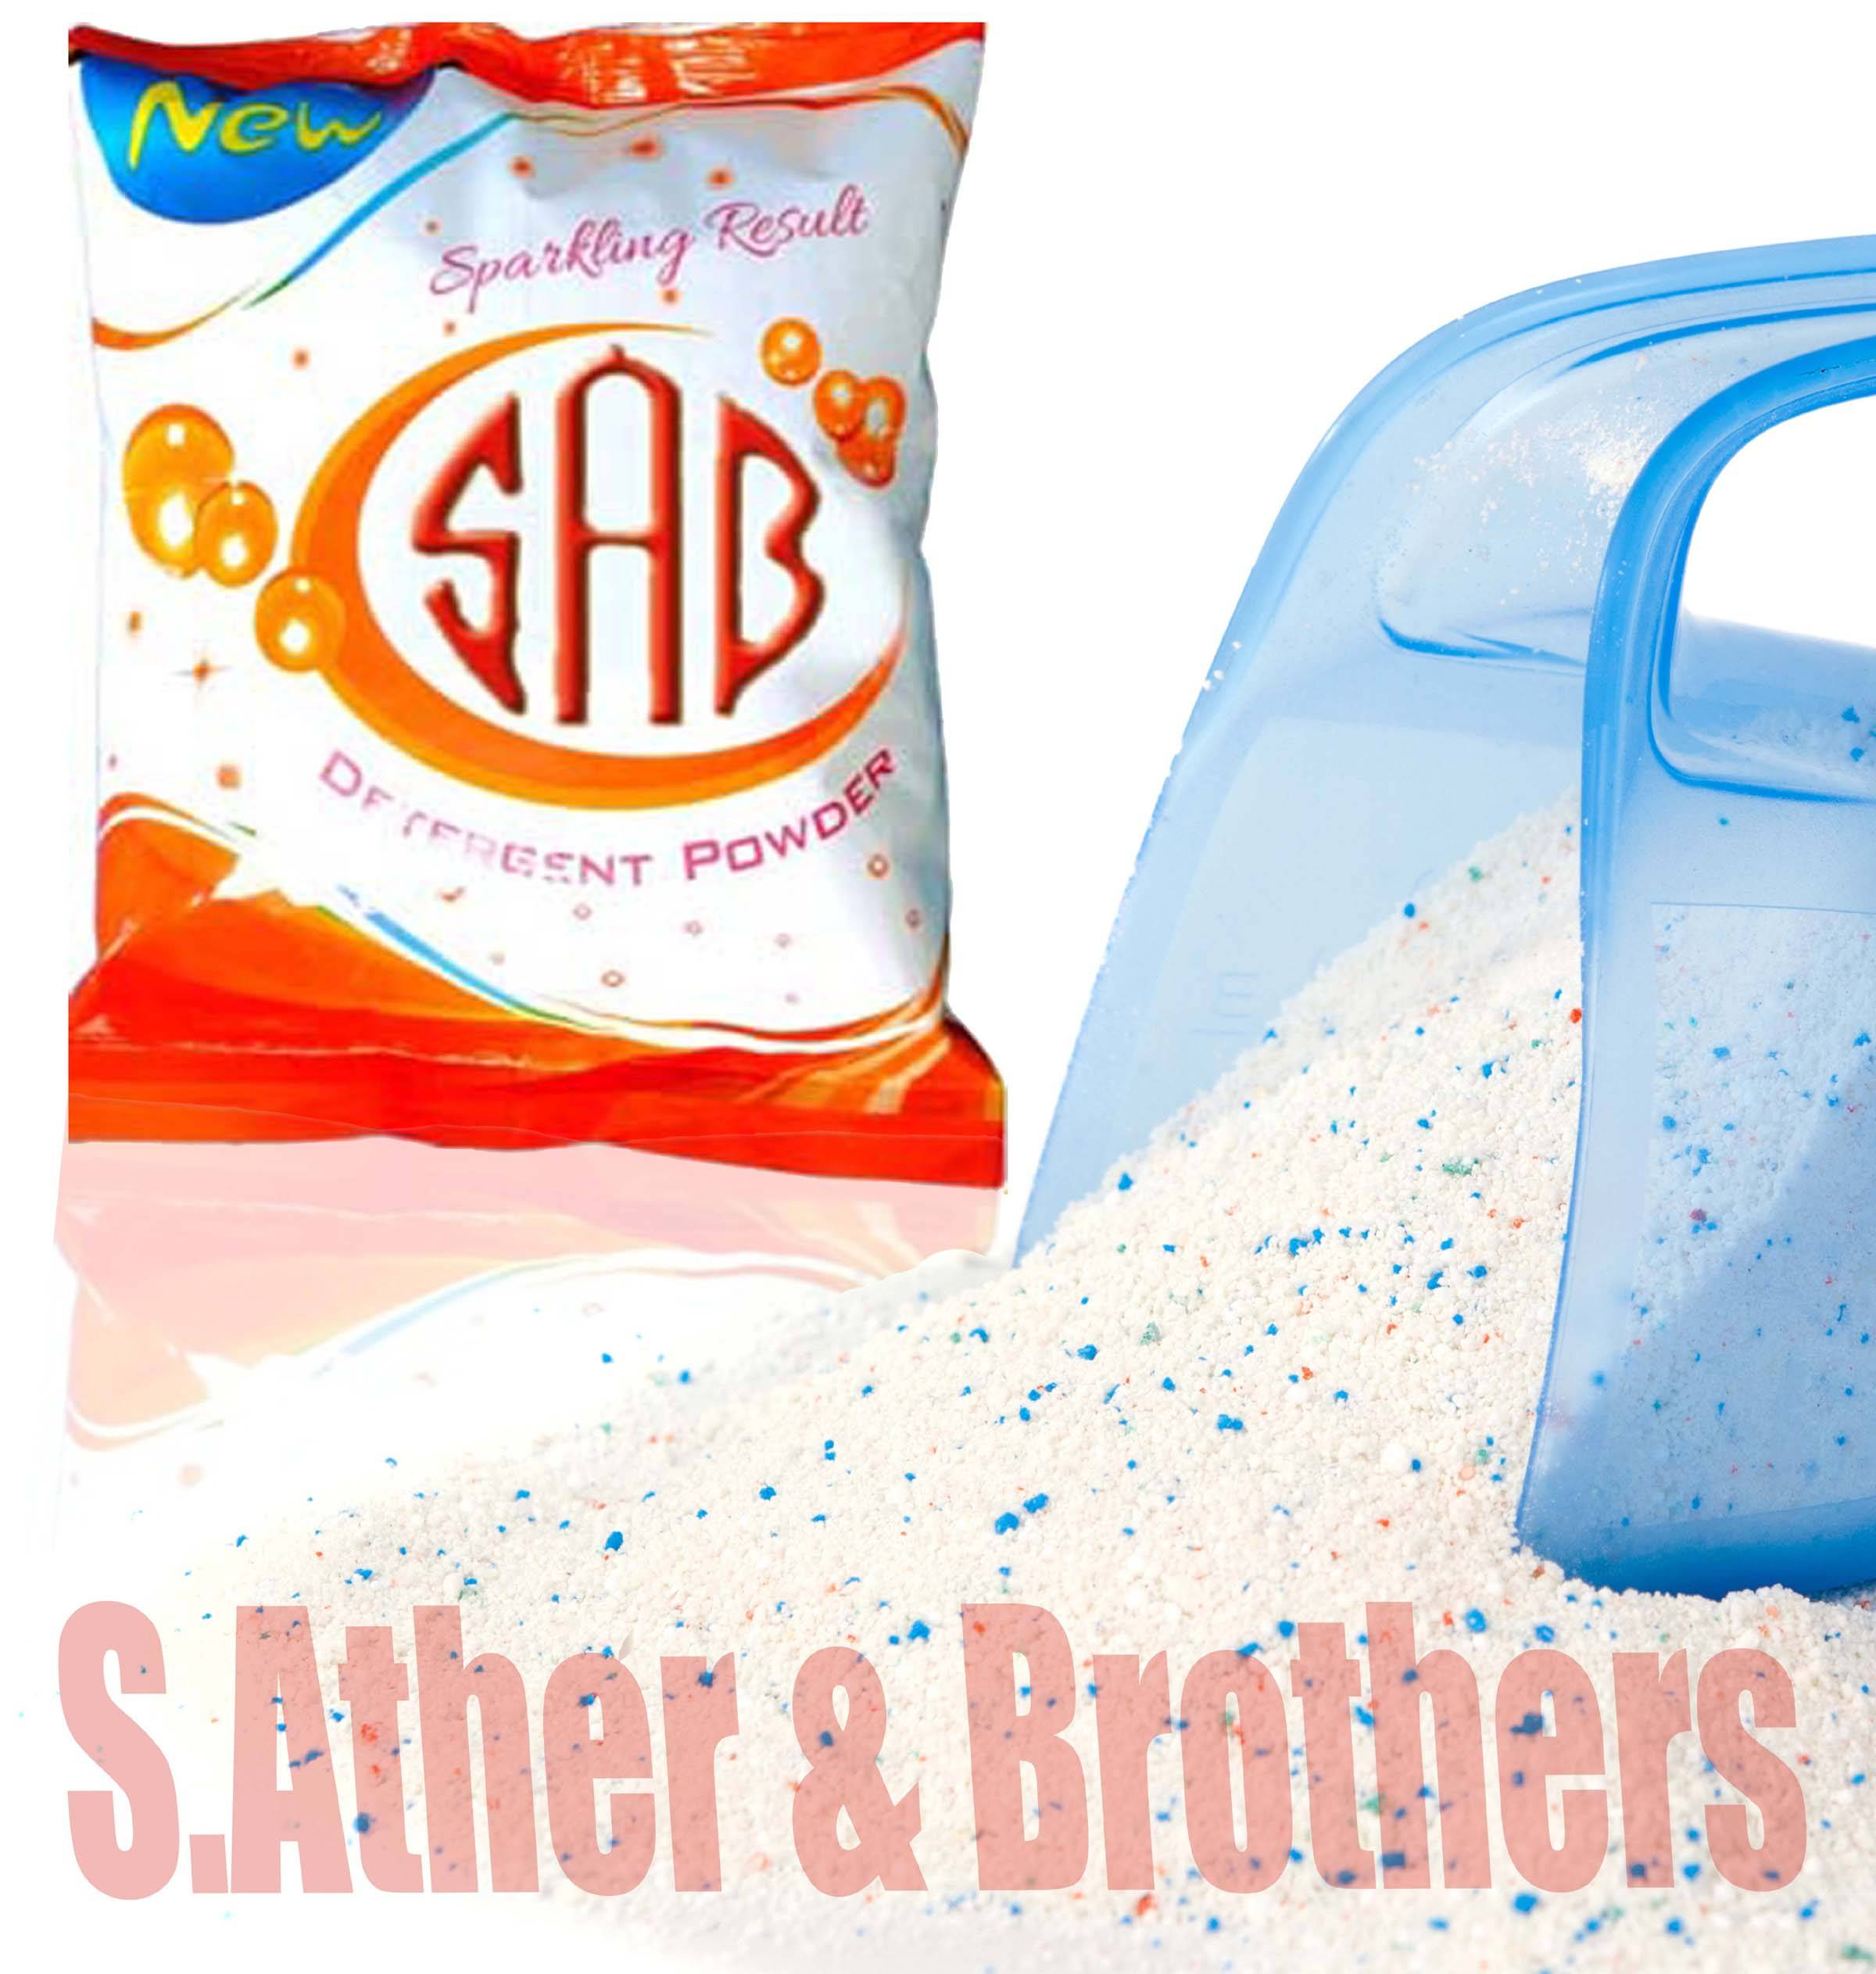 Detergent Powder / Washing Powder